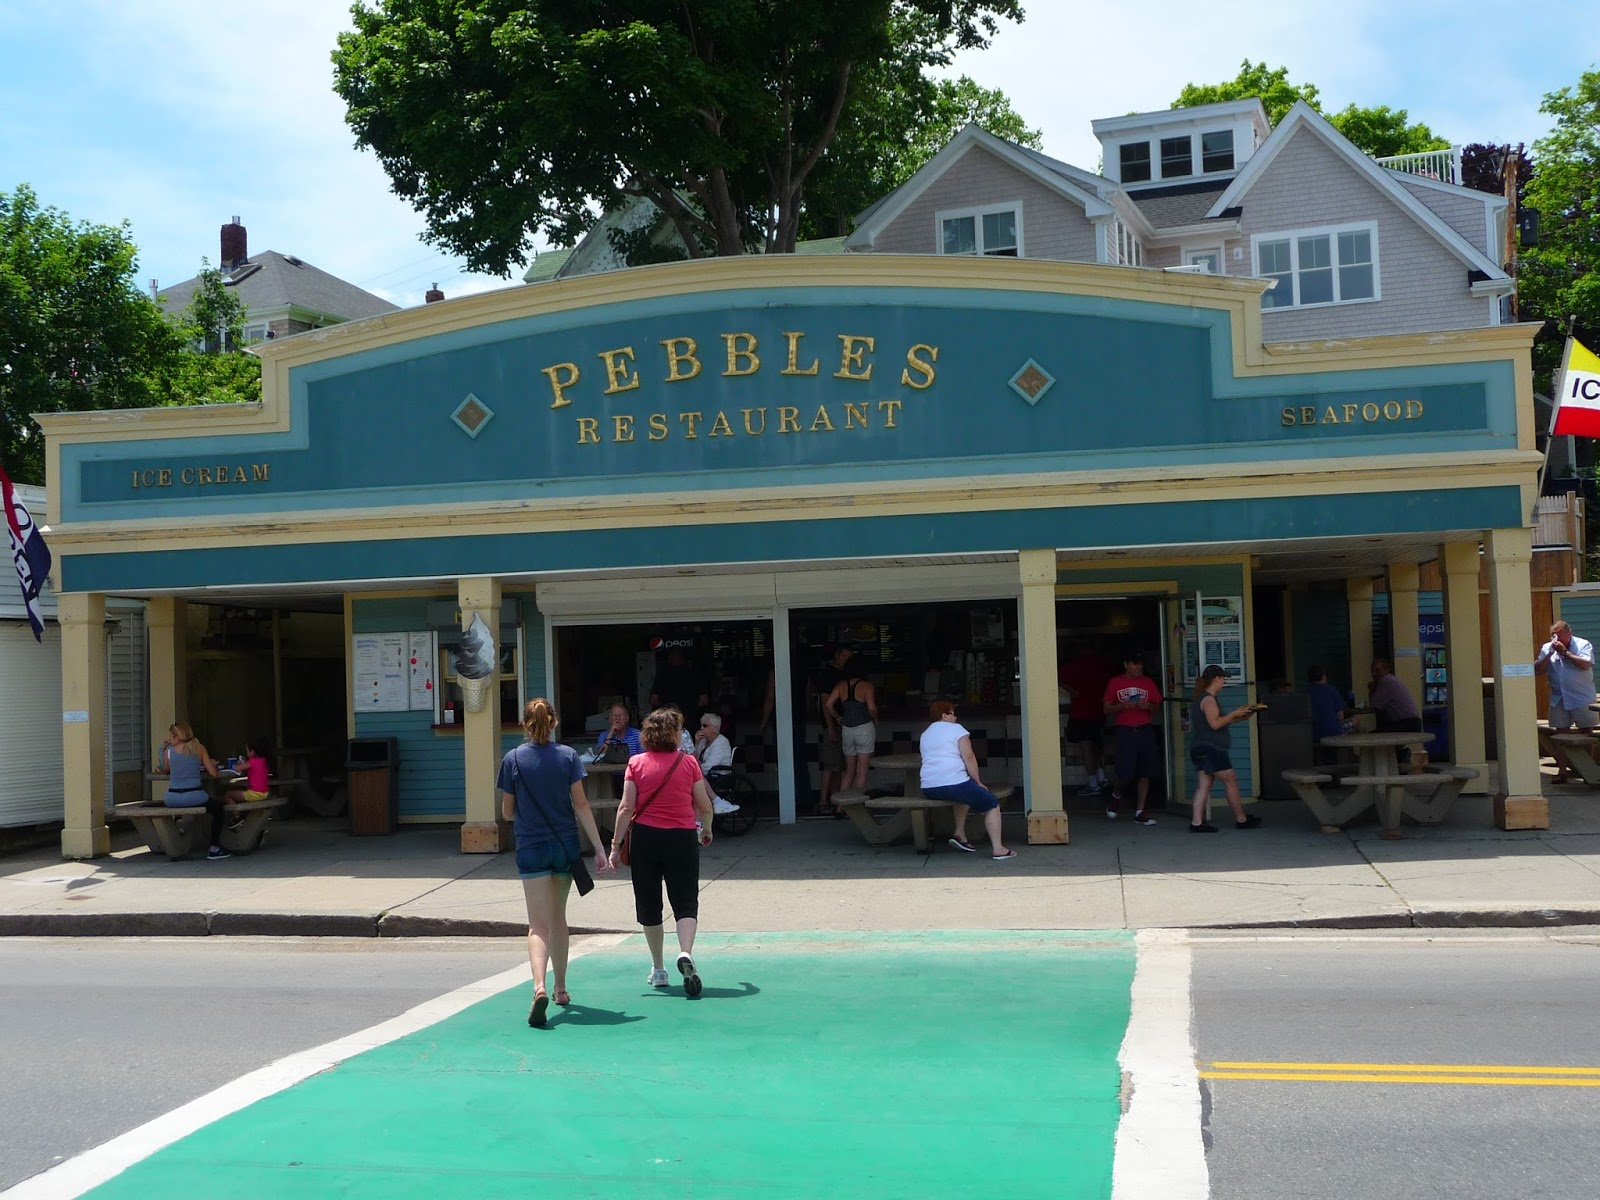 Pebbles Restaurant Good Eats In Plymouth Ma